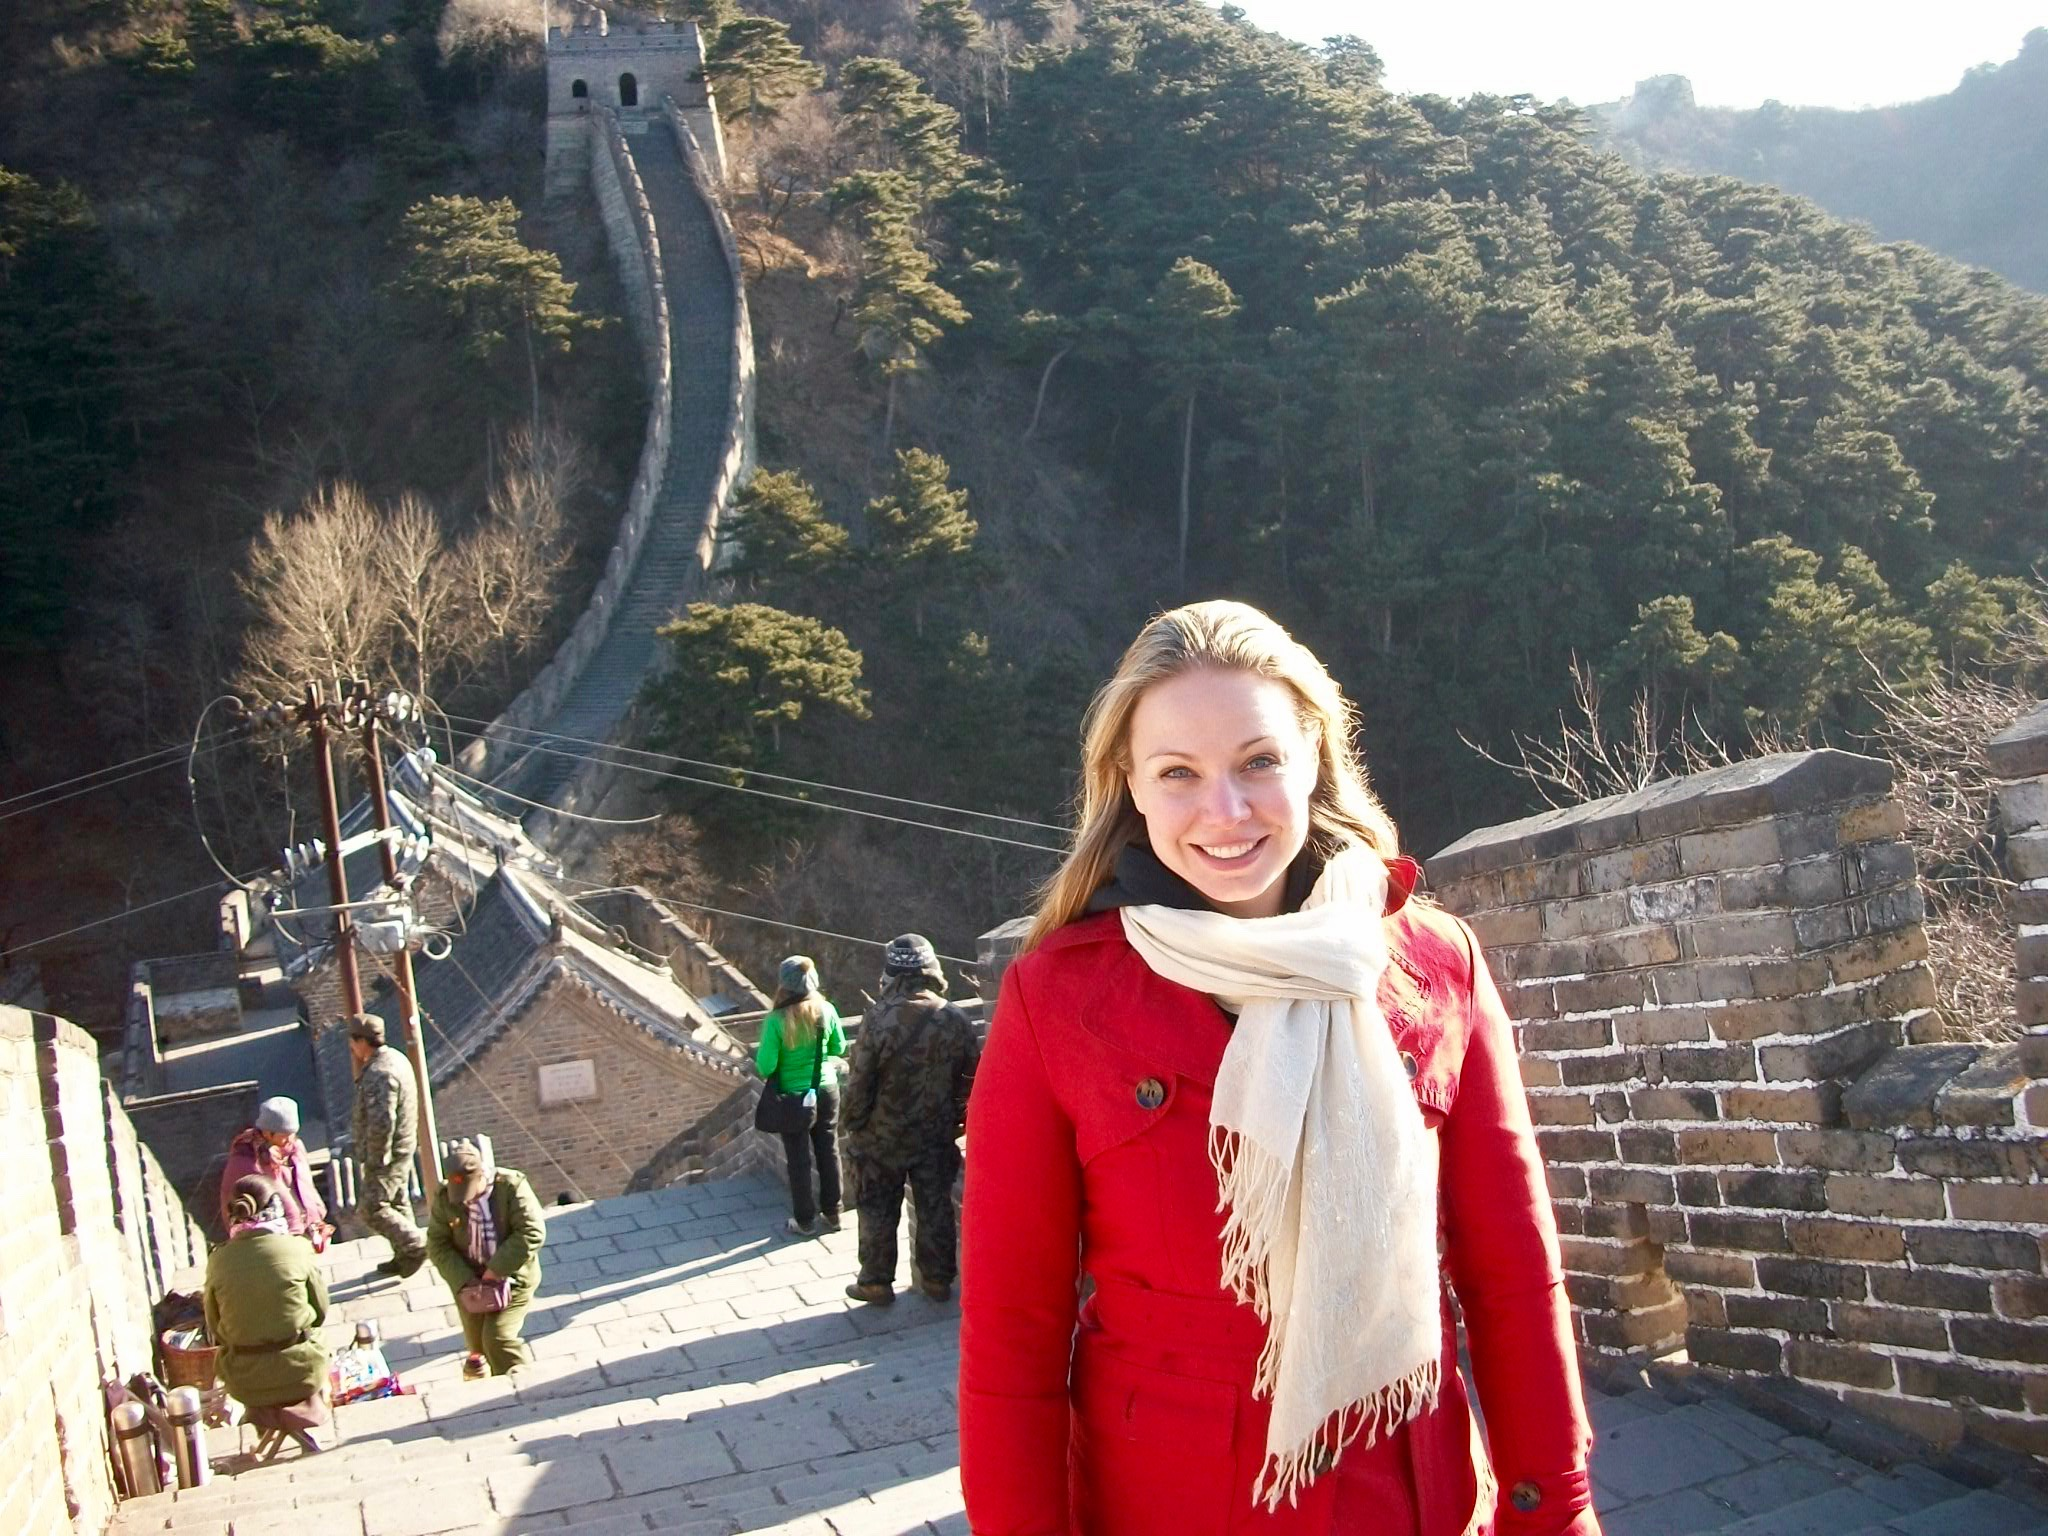 Stunning views high up on the Great Wall near Beijing, China